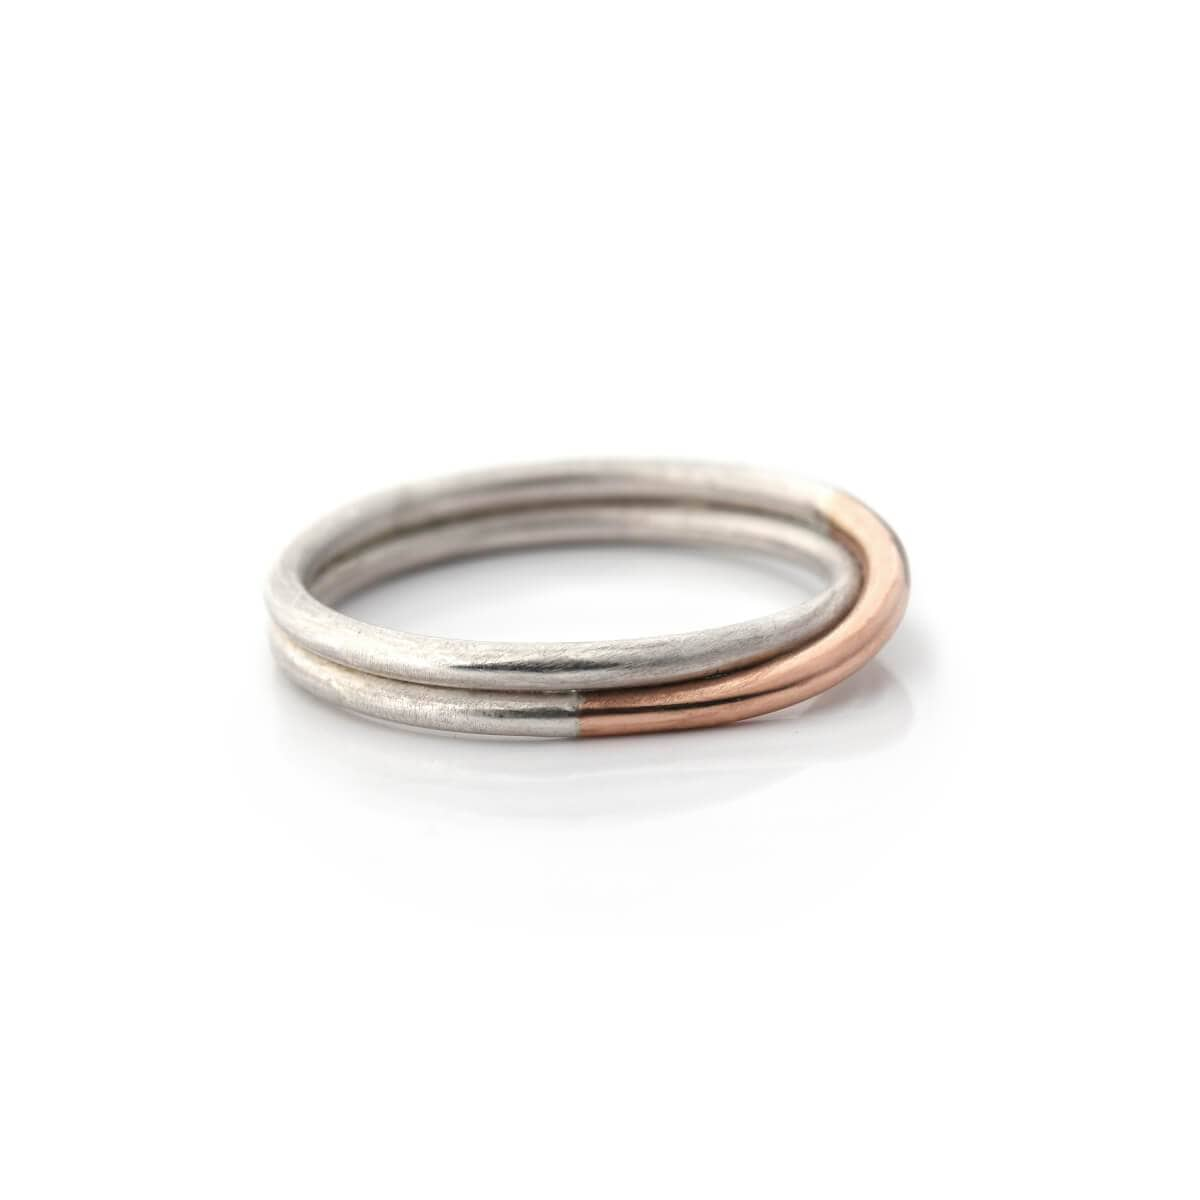 Simplicated Jewelry Rings Rose Gold + Silver Overlap Ring